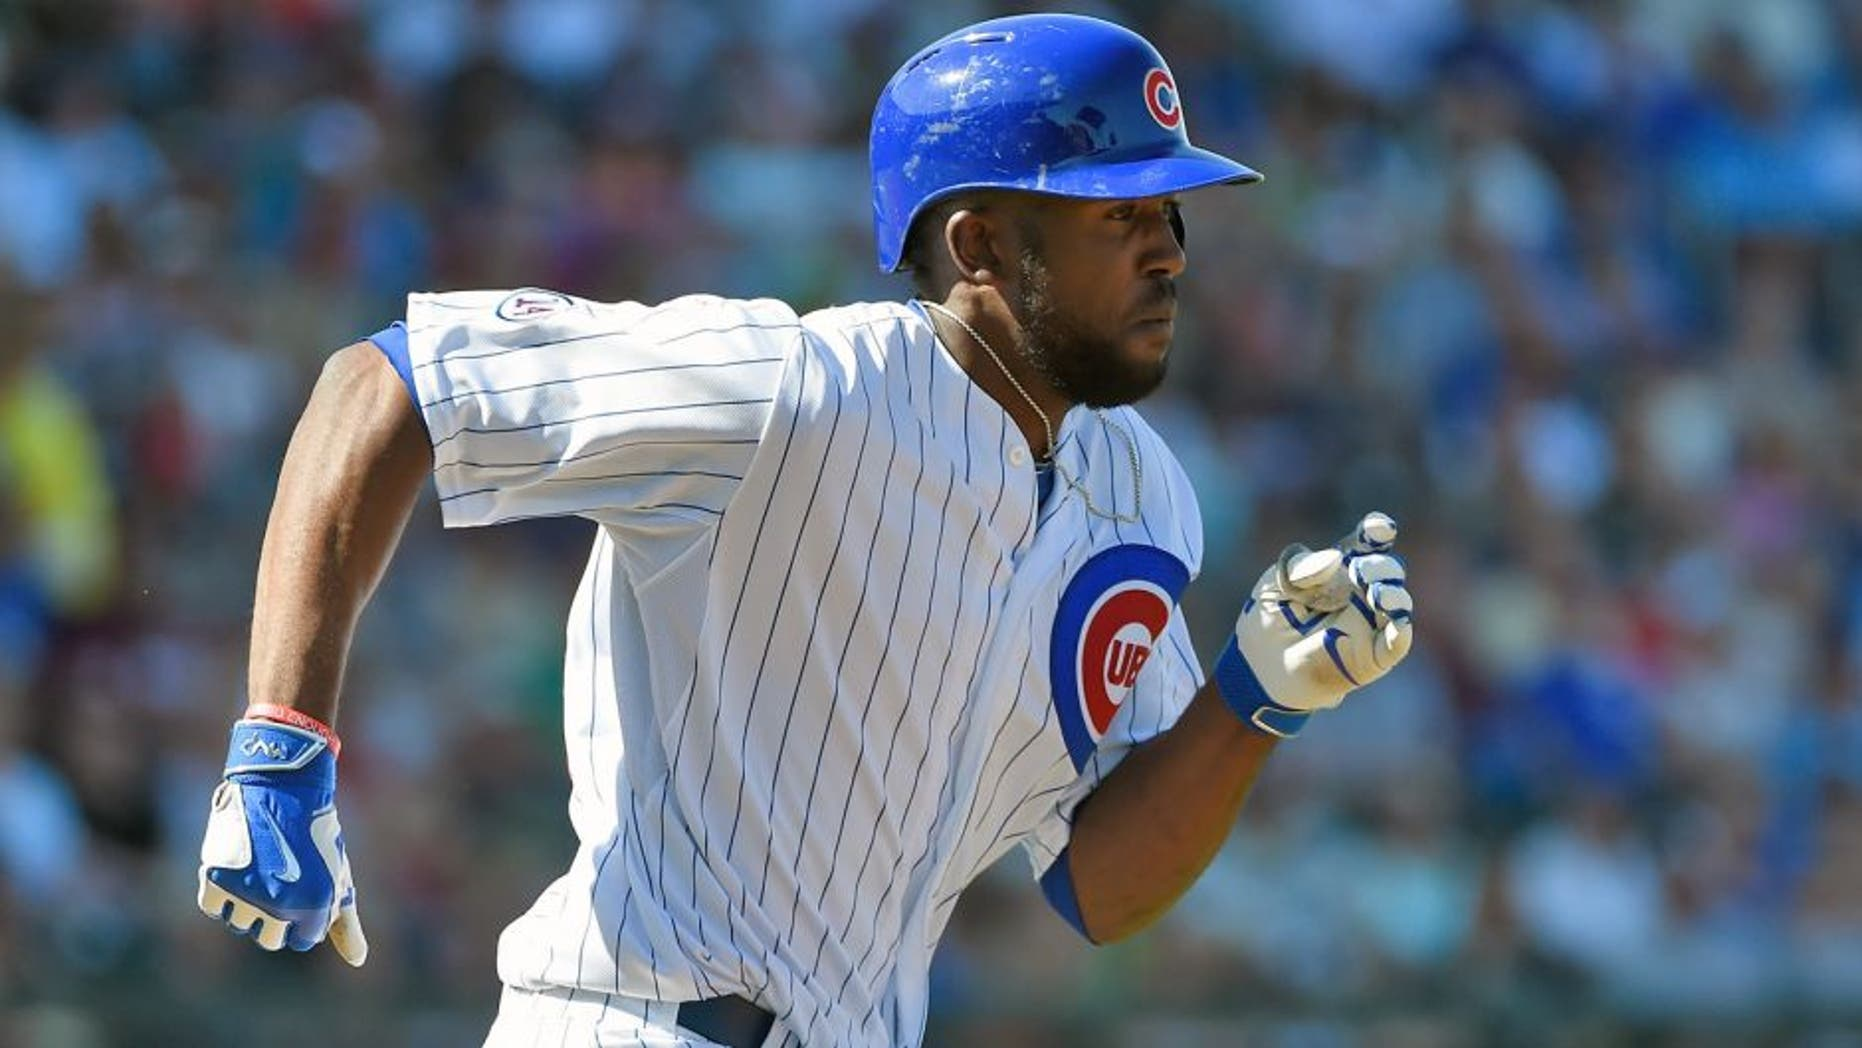 MESA, AZ - MARCH 09: Dexter Fowler #24 of the Chicago Cubs runs to first base after hitting a single against the San Diego Padres on March 9, 2015 in Mesa, Arizona. (Photo by Lisa Blumenfeld/Getty Images)